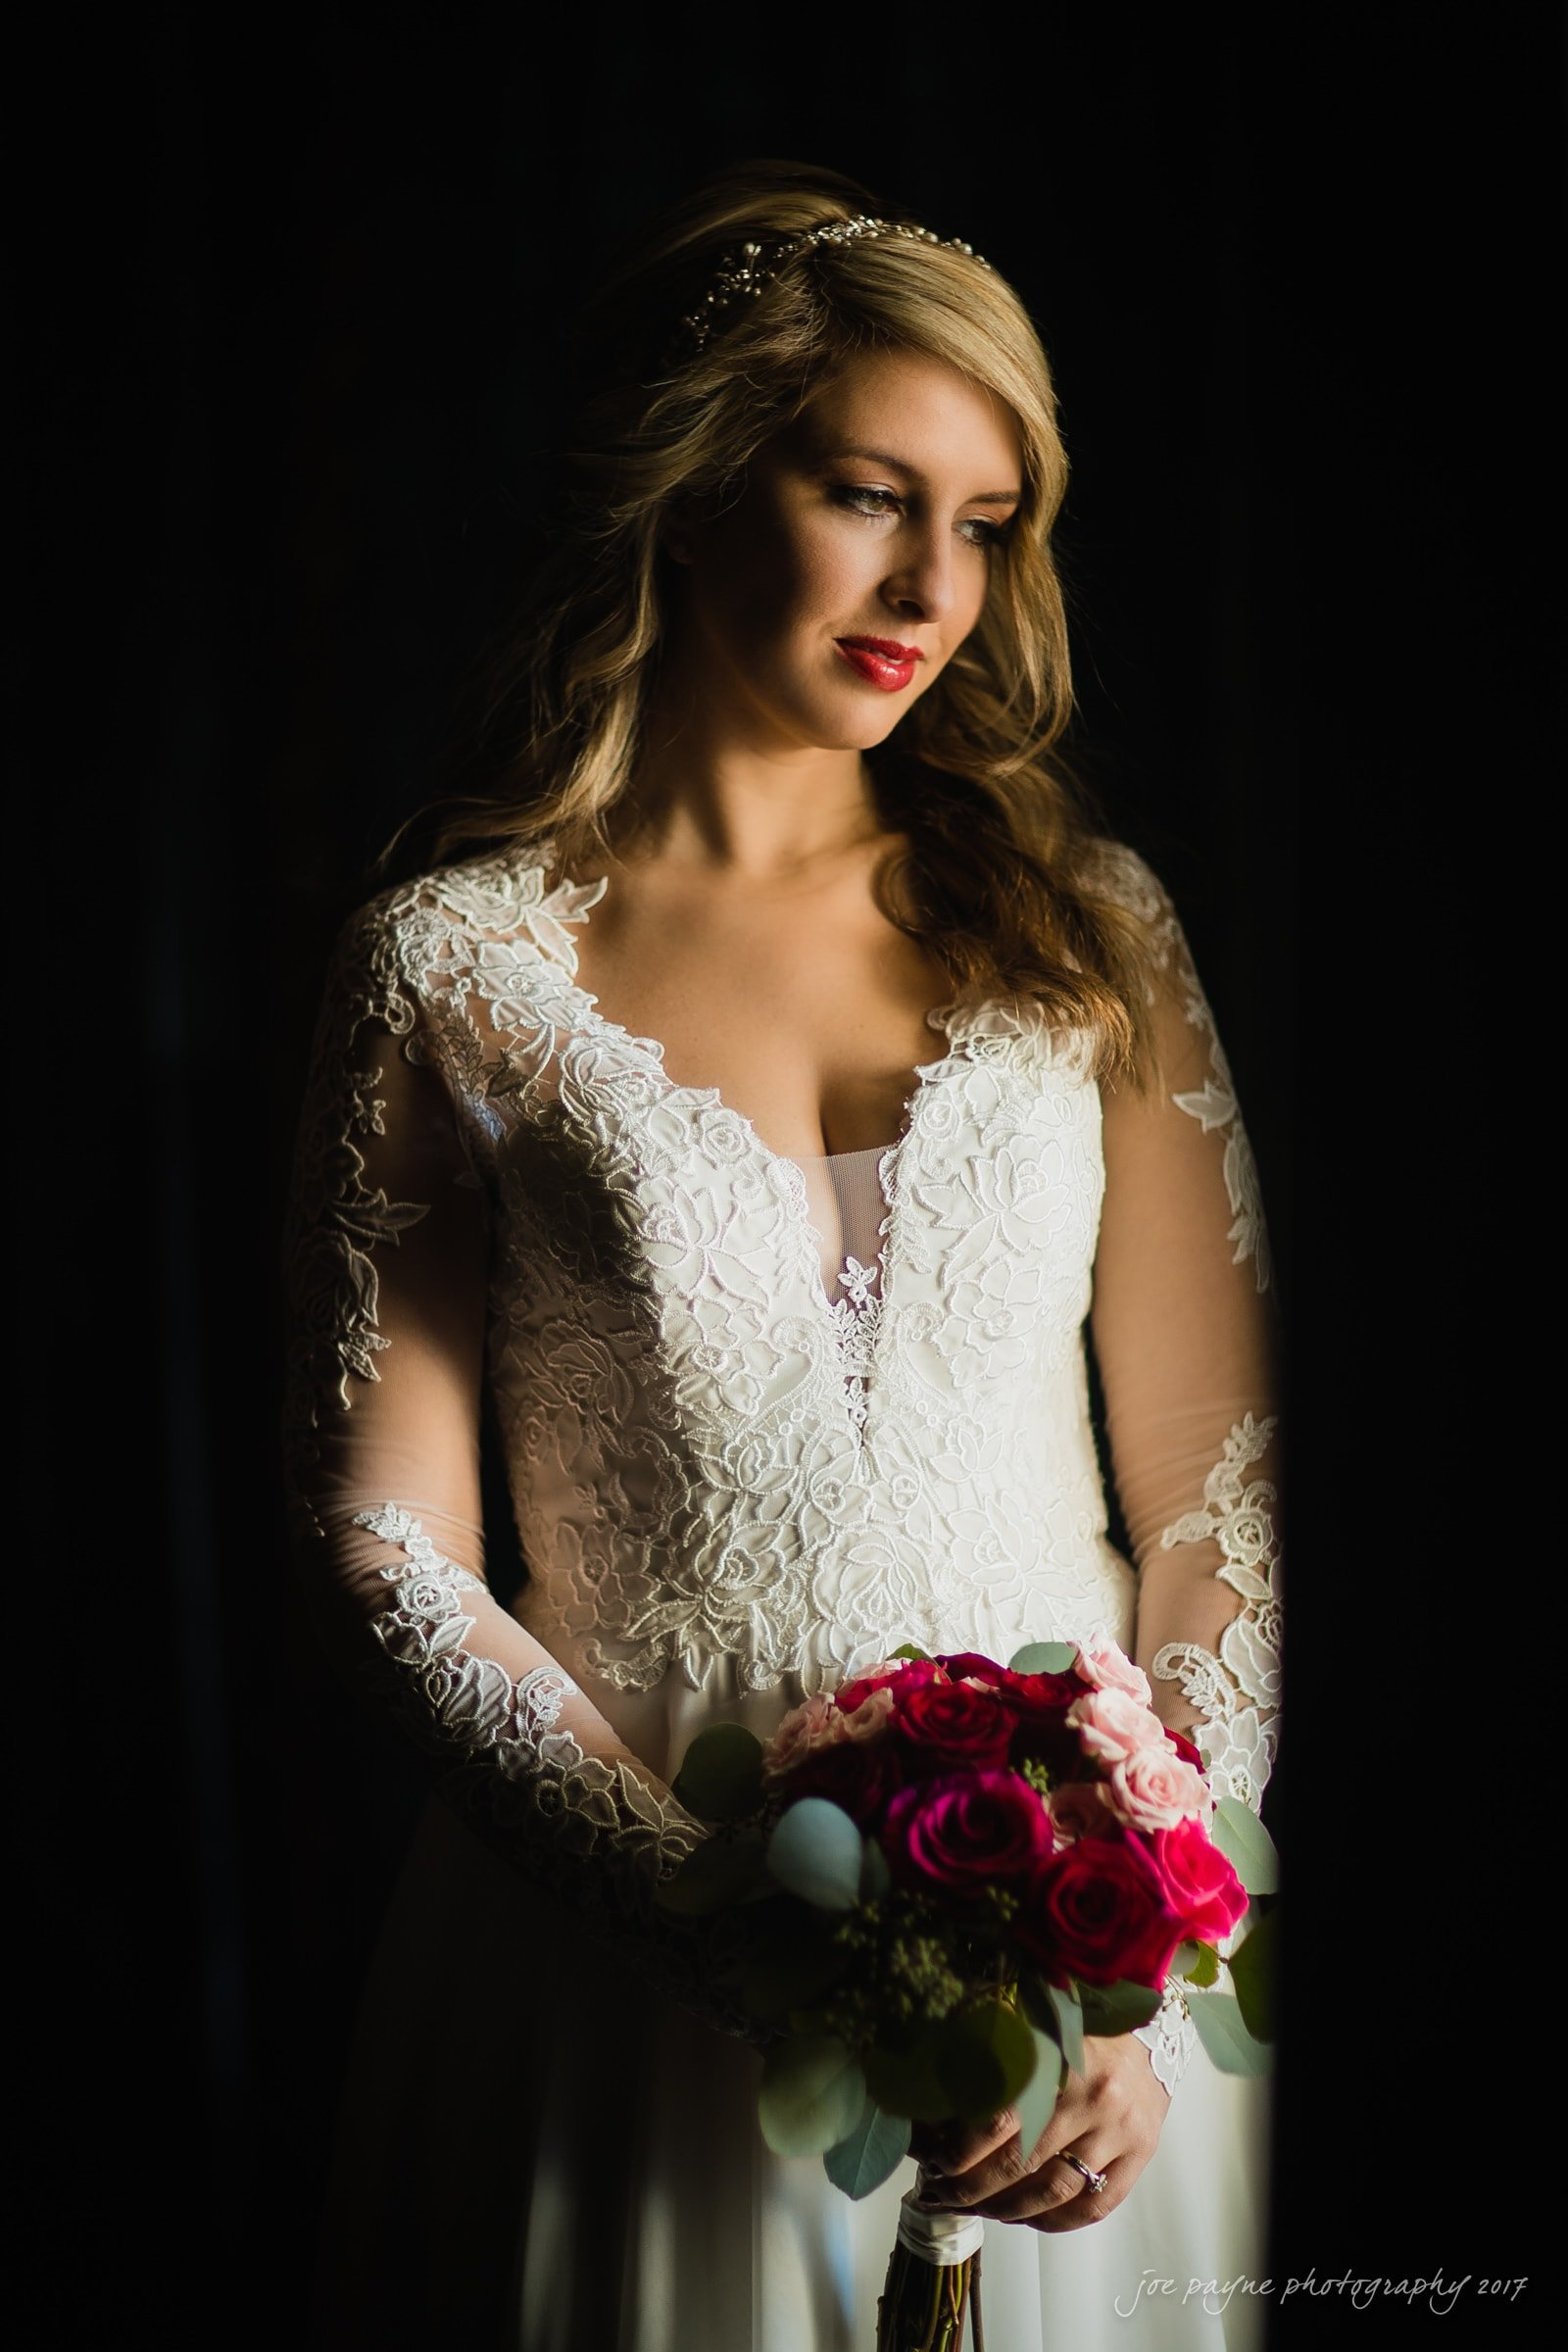 durham wedding photographer – jill's bridal portrait session